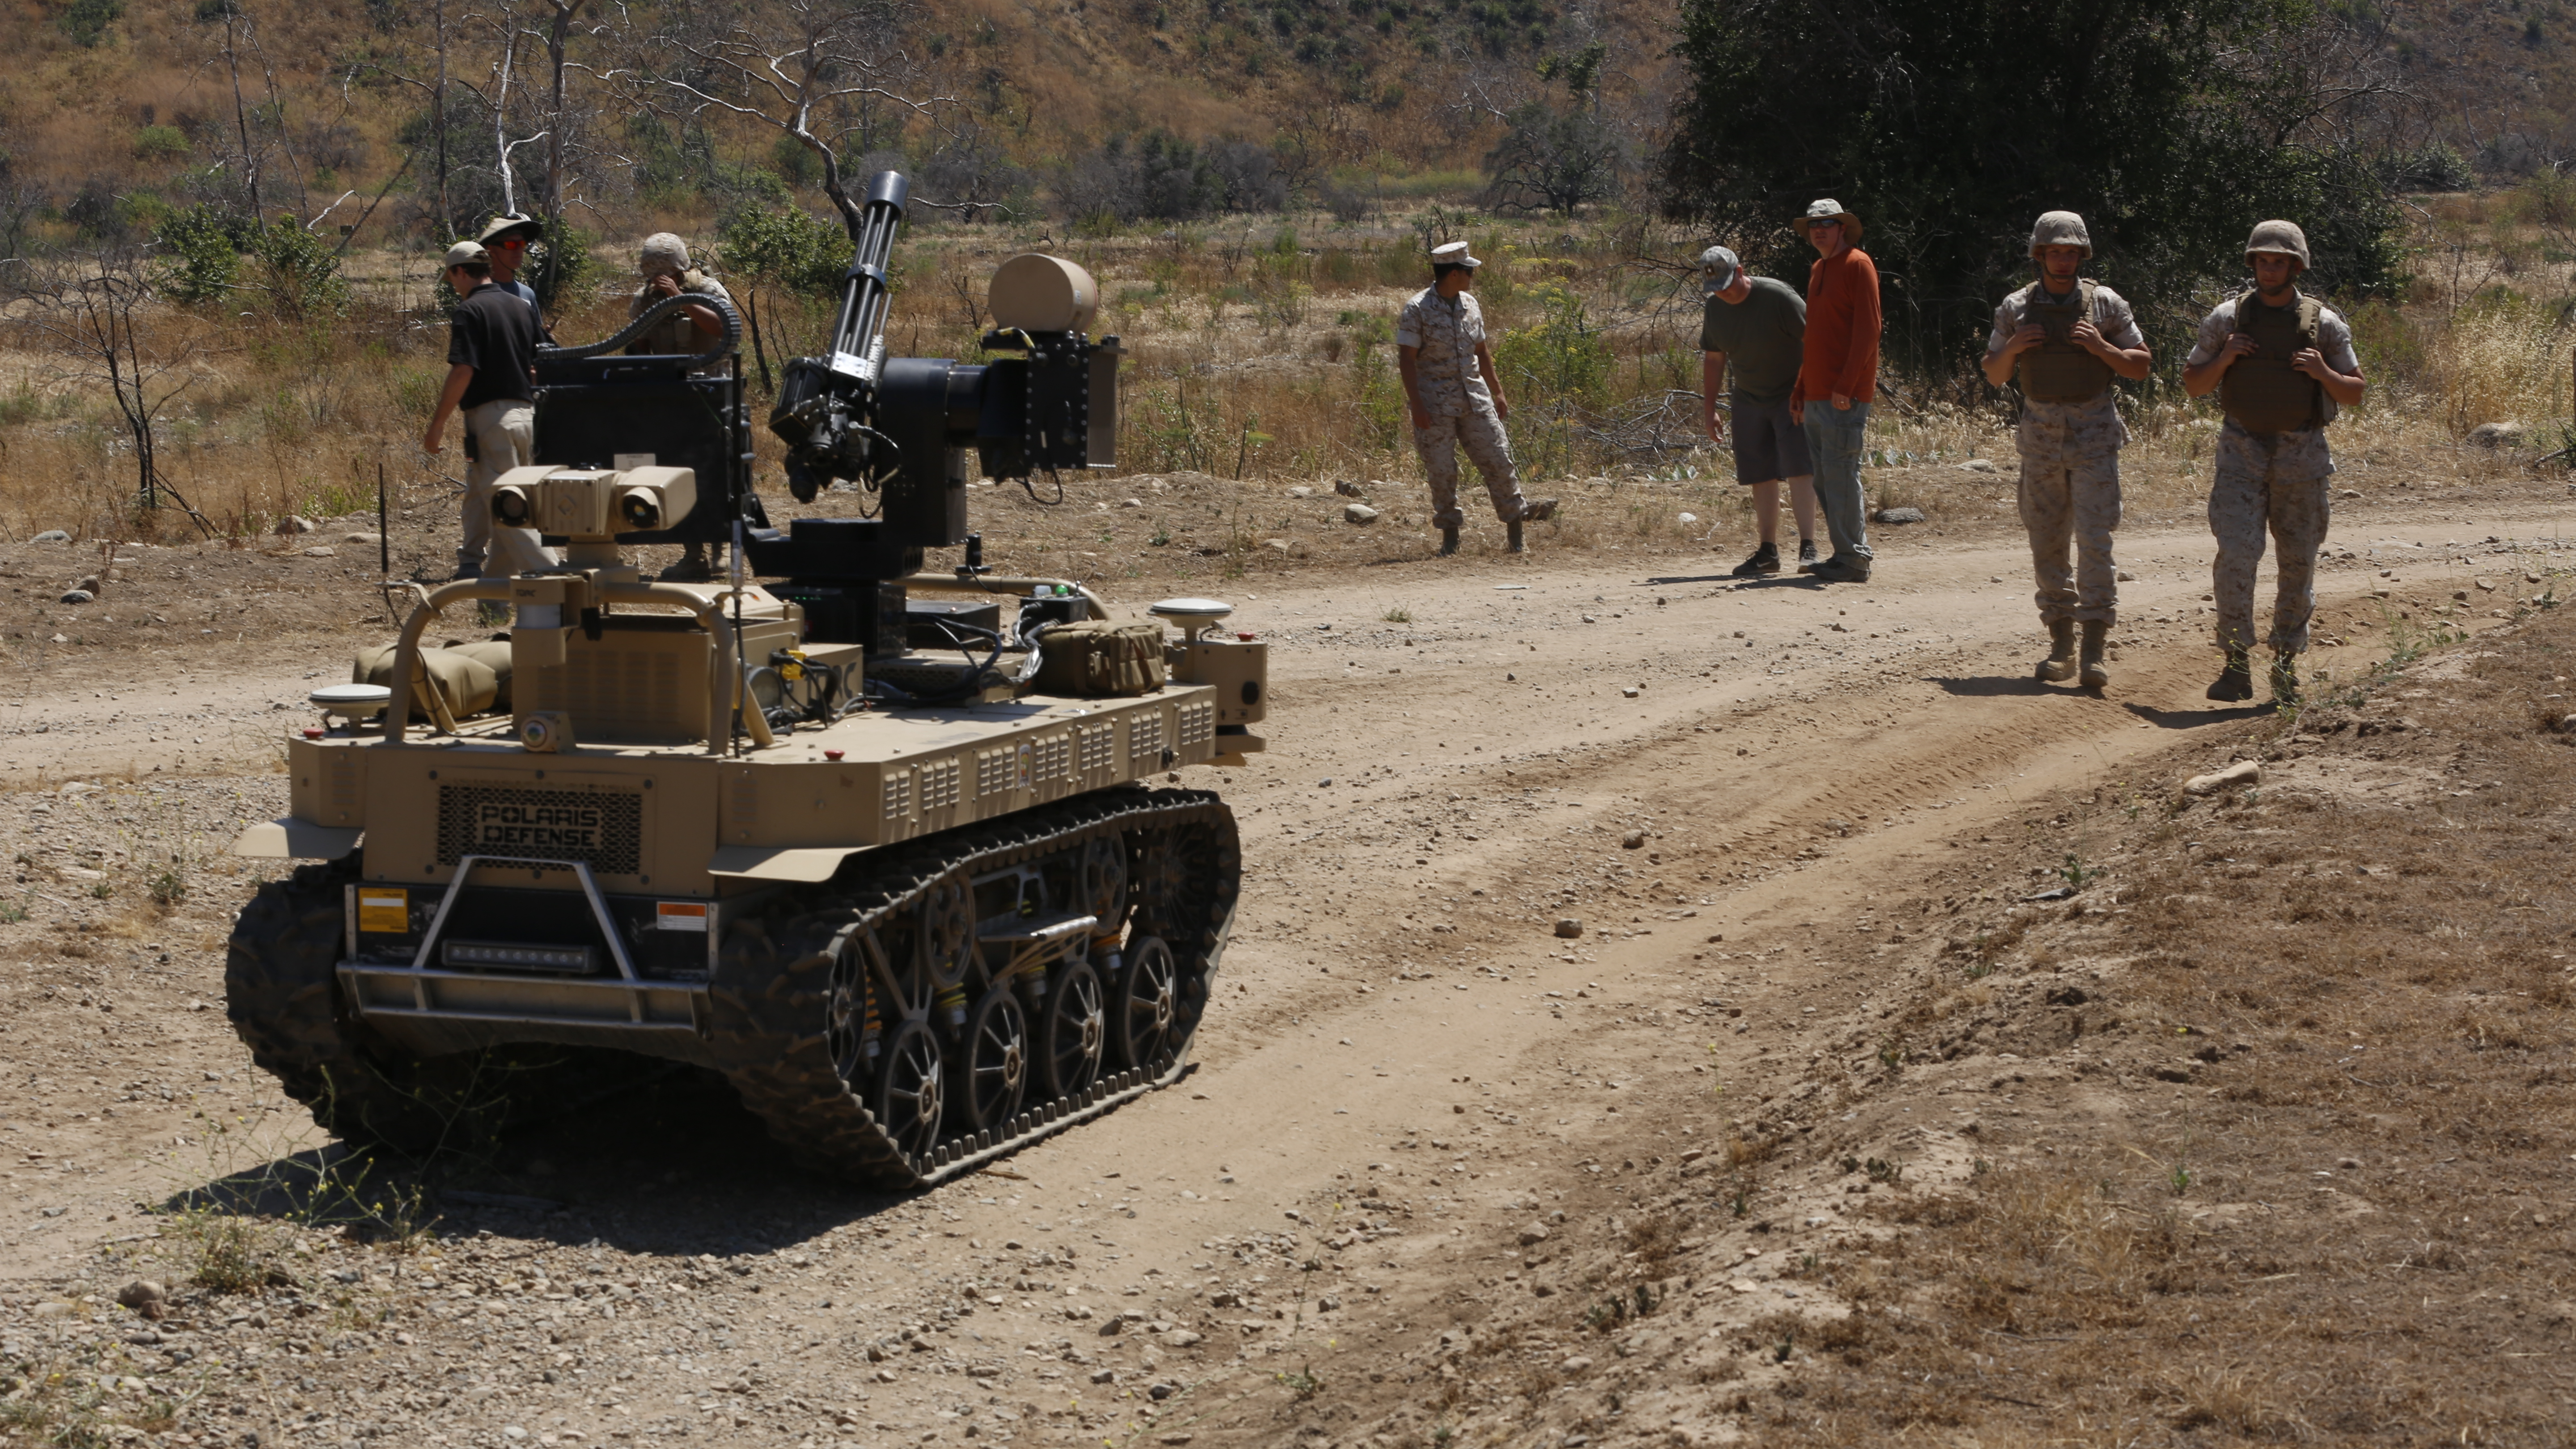 Marines with Kilo Company, 3rd Battalion, 5th Regiment, execute a patrol exercise with the robotic vehicle modular aboard Camp Pendleton, Calif., June 23, 2016. The system is still in development and will be used during exercise Rim of the Pacific. The Marine Corps Warfighting Laboratory is conducting a Marine Air-Ground Task Force Integrated Experiment to explore new gear and access its capabilities for potential future use. (U.S. Marine Corps photo by Lance Cpl. Frank Cordoba/Released)